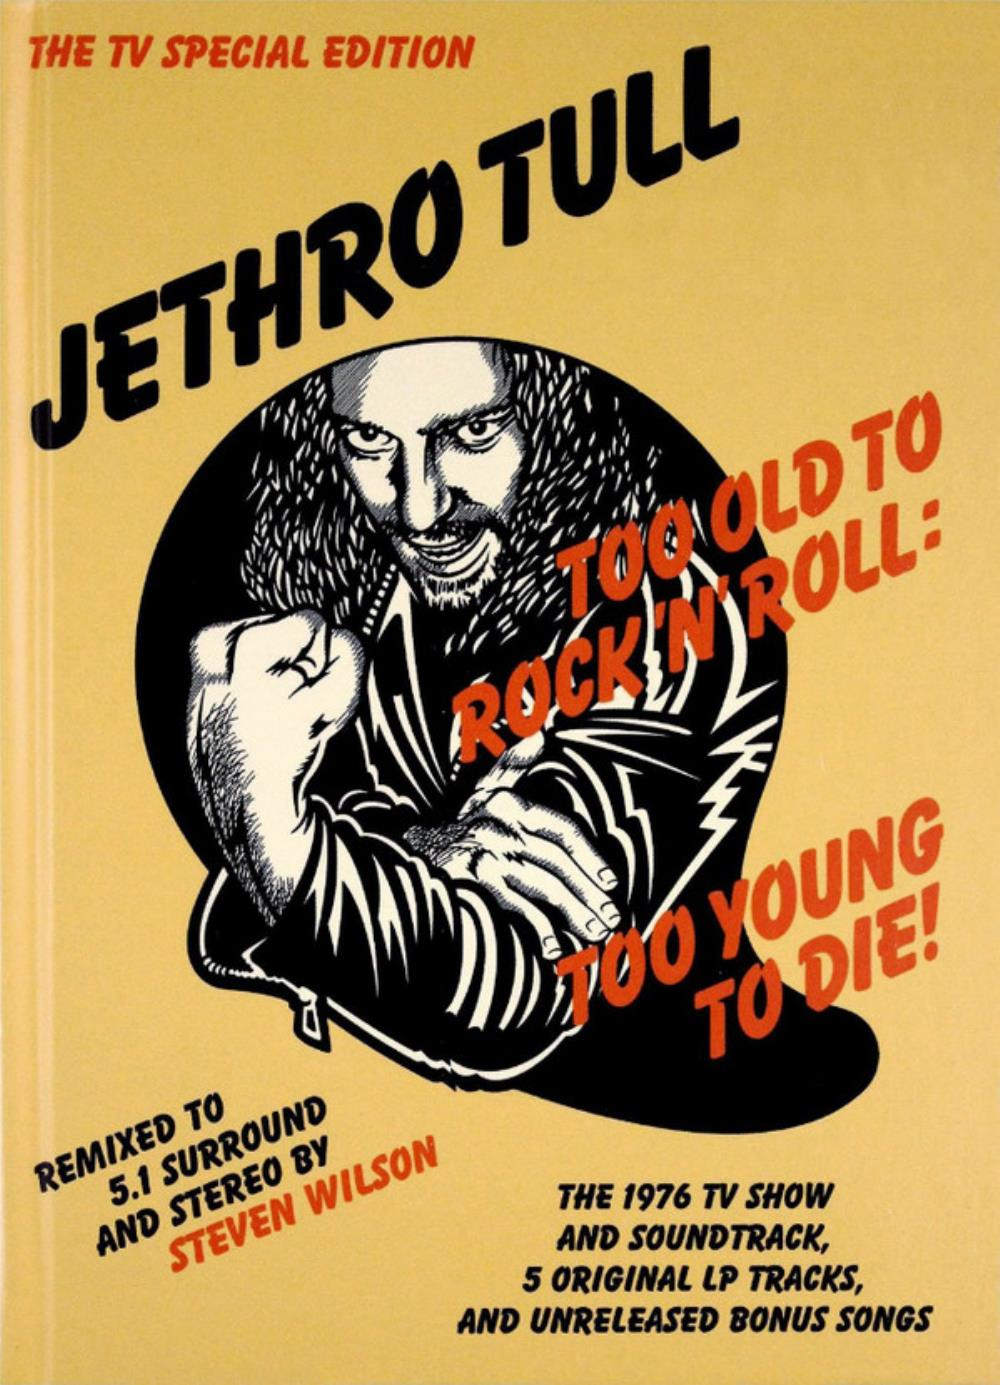 Jethro Tull - Too Old To Rock'n'roll: Too Young To Die - The Tv Special Edition CD (album) cover